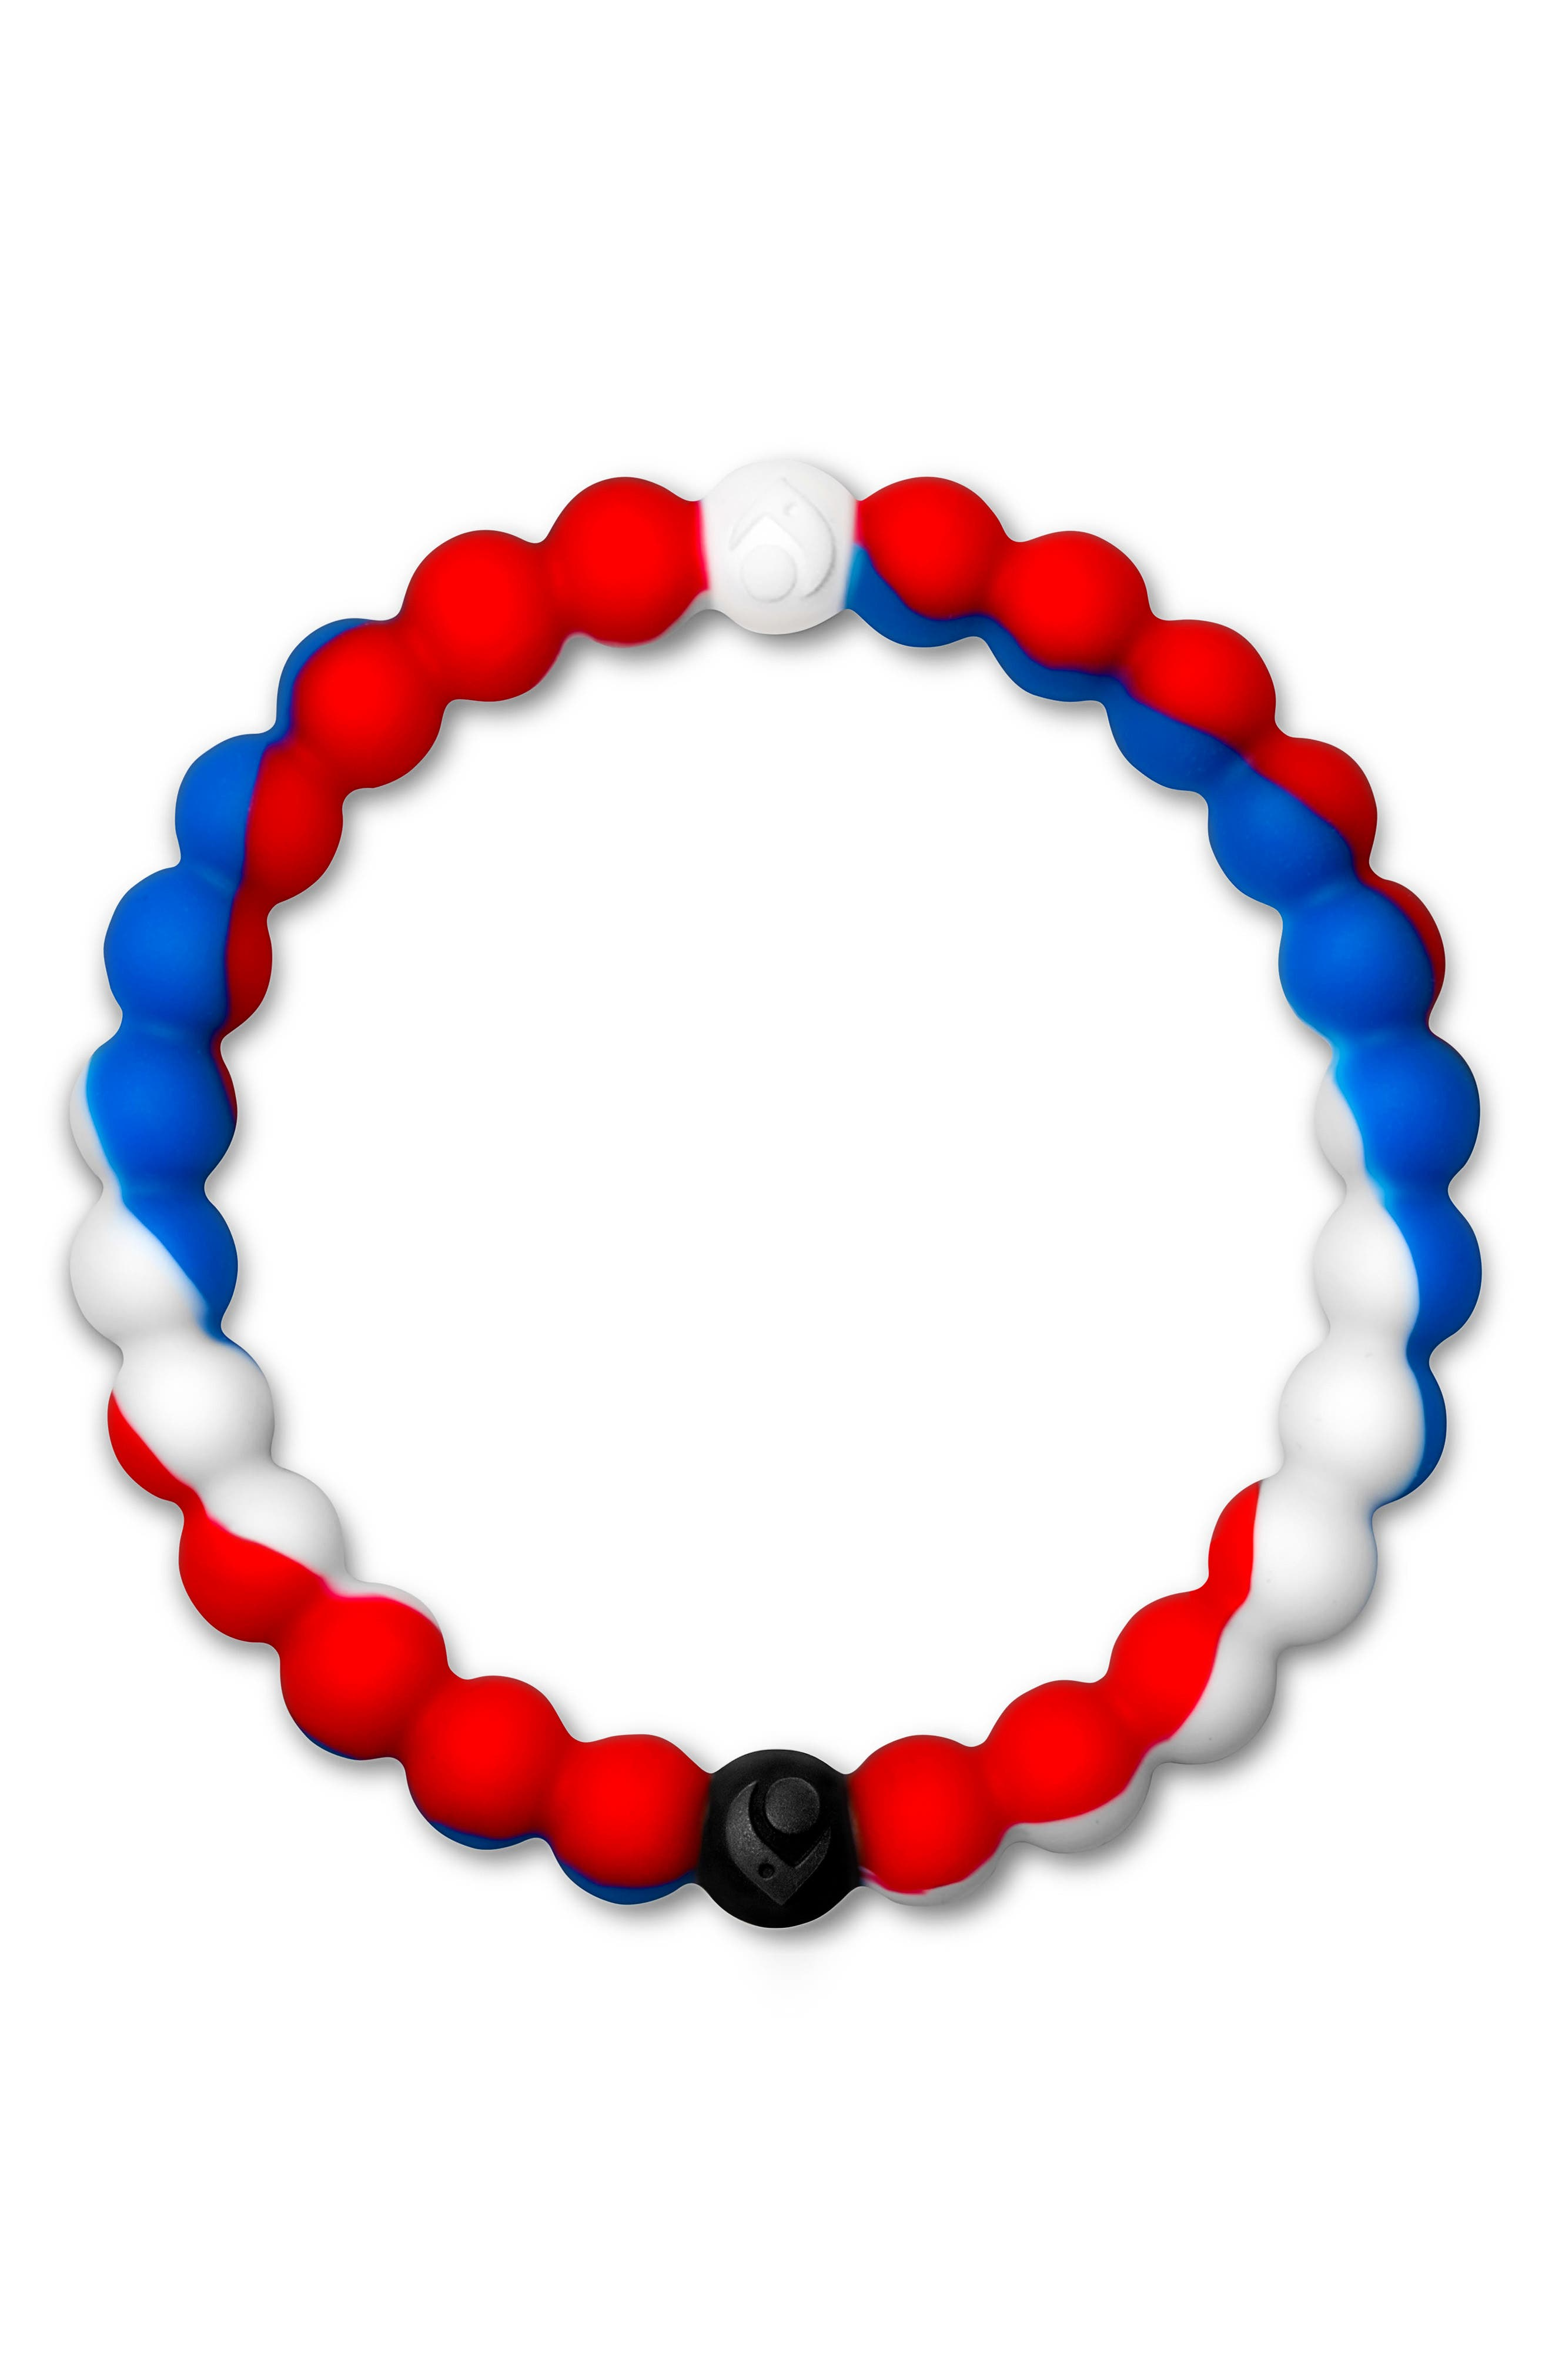 Wear Your World Bracelet,                             Main thumbnail 1, color,                             Red White And Blue